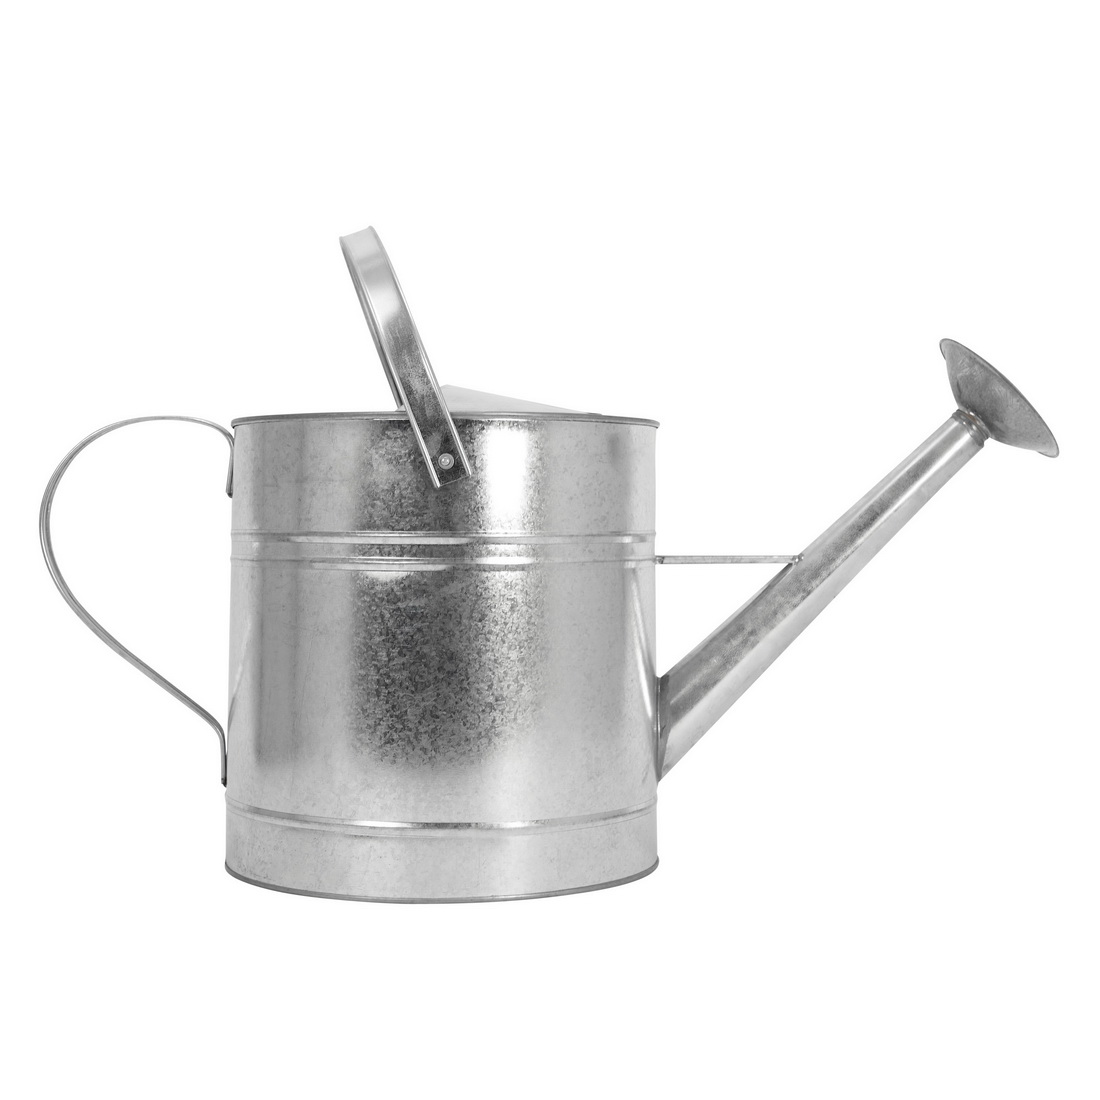 McGregor's Watering Can 10 L Galvanized WCAN10G